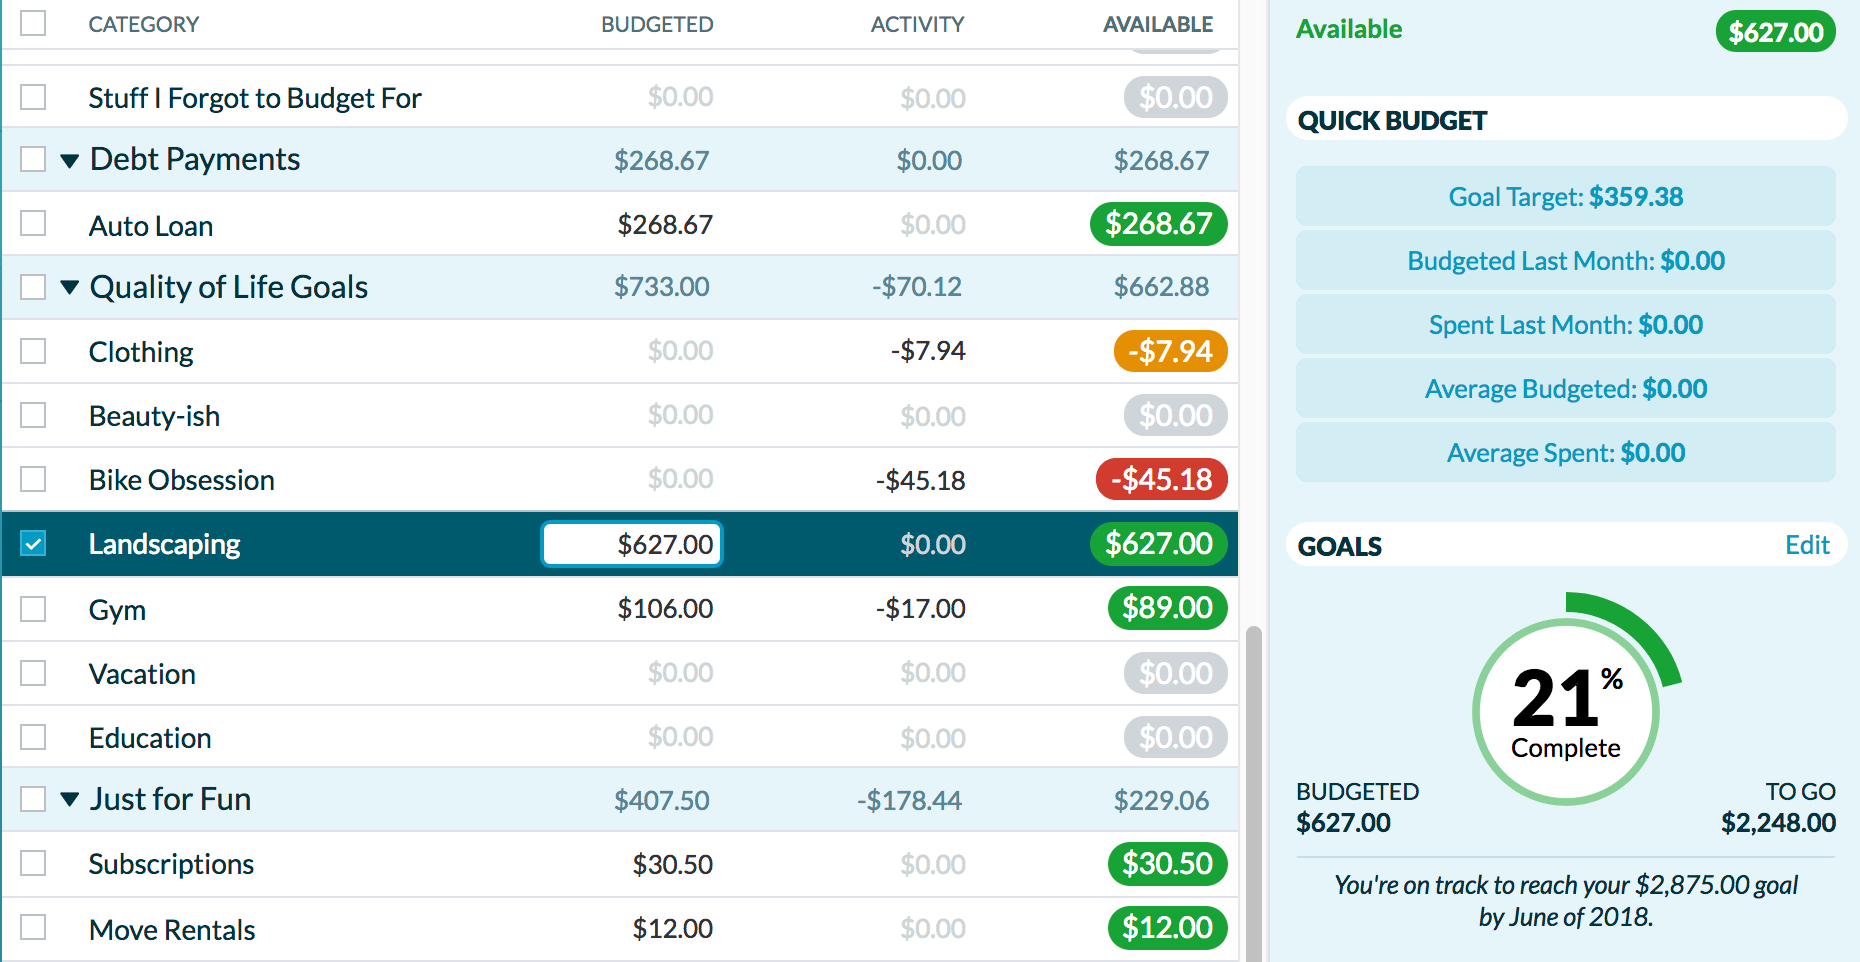 Ynab Spreadsheet Throughout The Best Budgeting Apps And Tools Reviewswirecutter A New Db